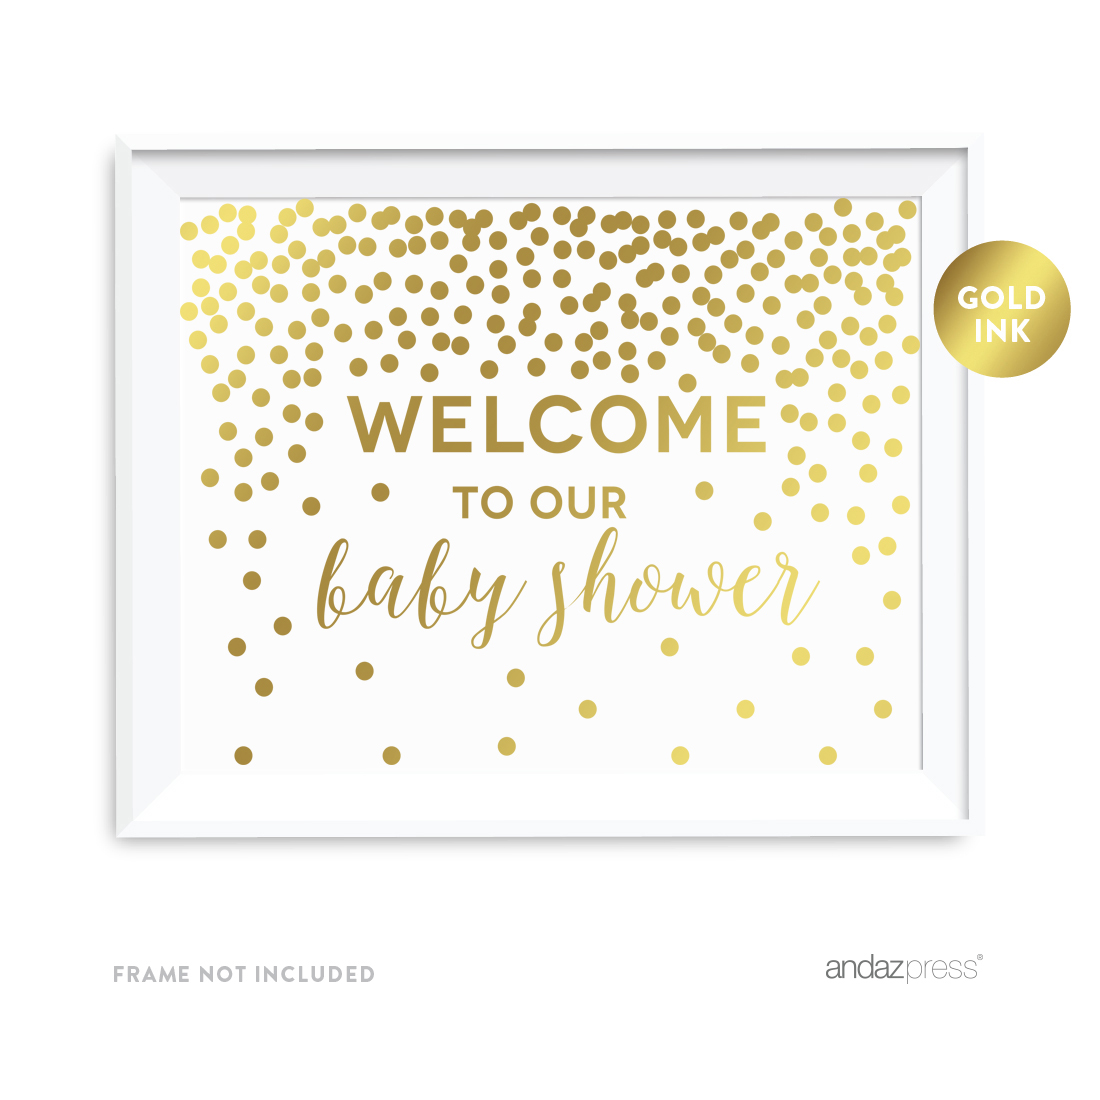 Metallic Gold Confetti Polka Dots 8.5x11-inch Party Sign, Welcome to our Baby Shower, Unframed